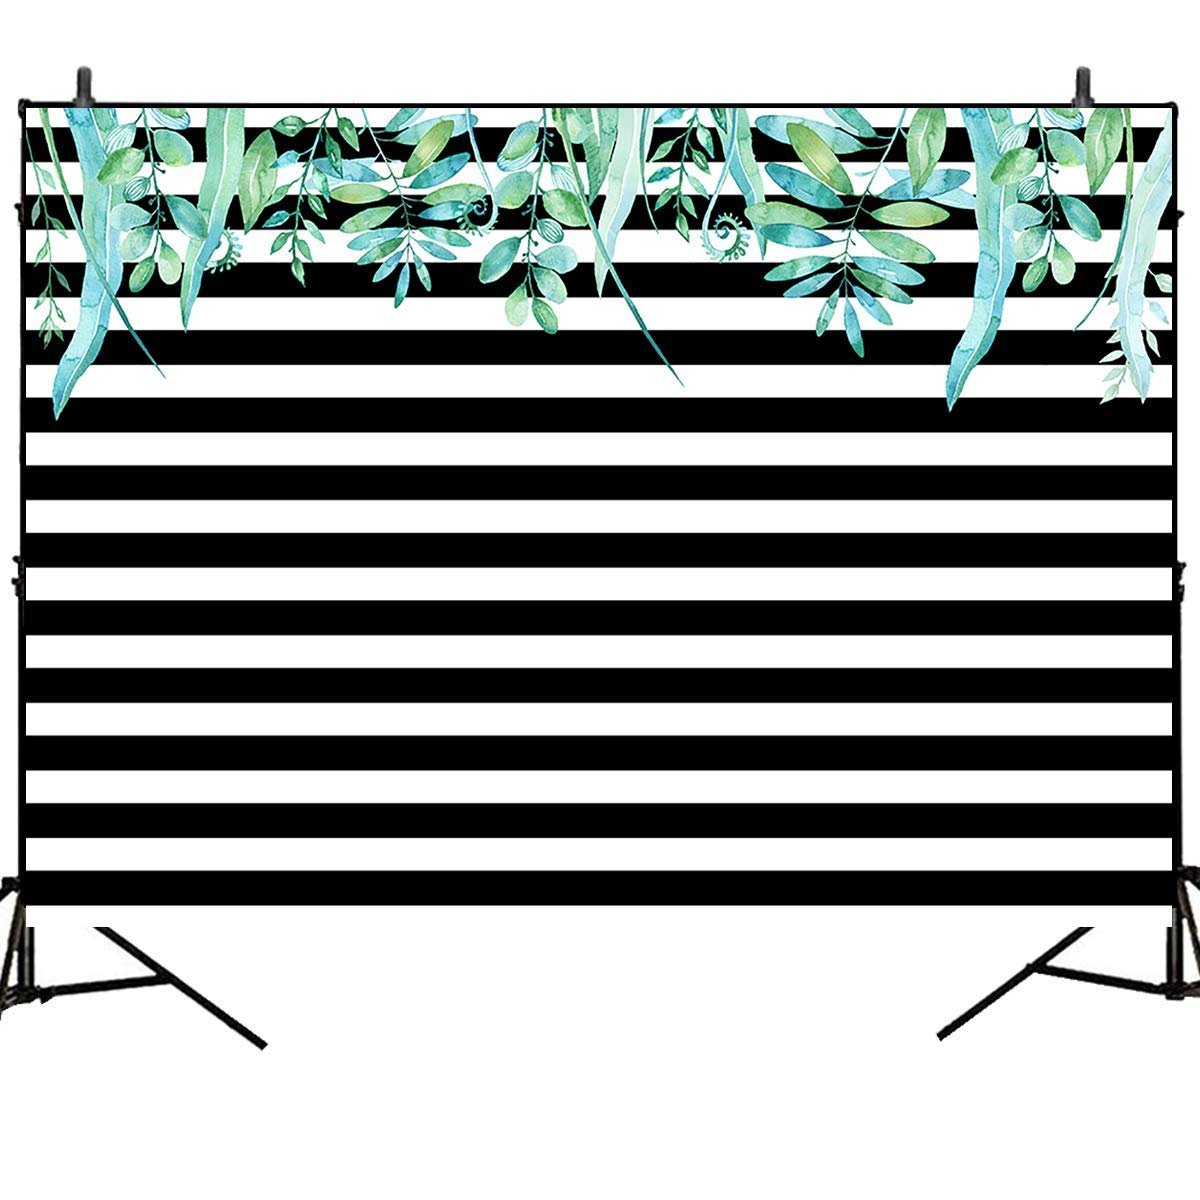 Mehofoto Black and White Stripes Backdrops 7x5ft Green Leaves Photography Backdrops Birthday Party Photo Studio Booth Background